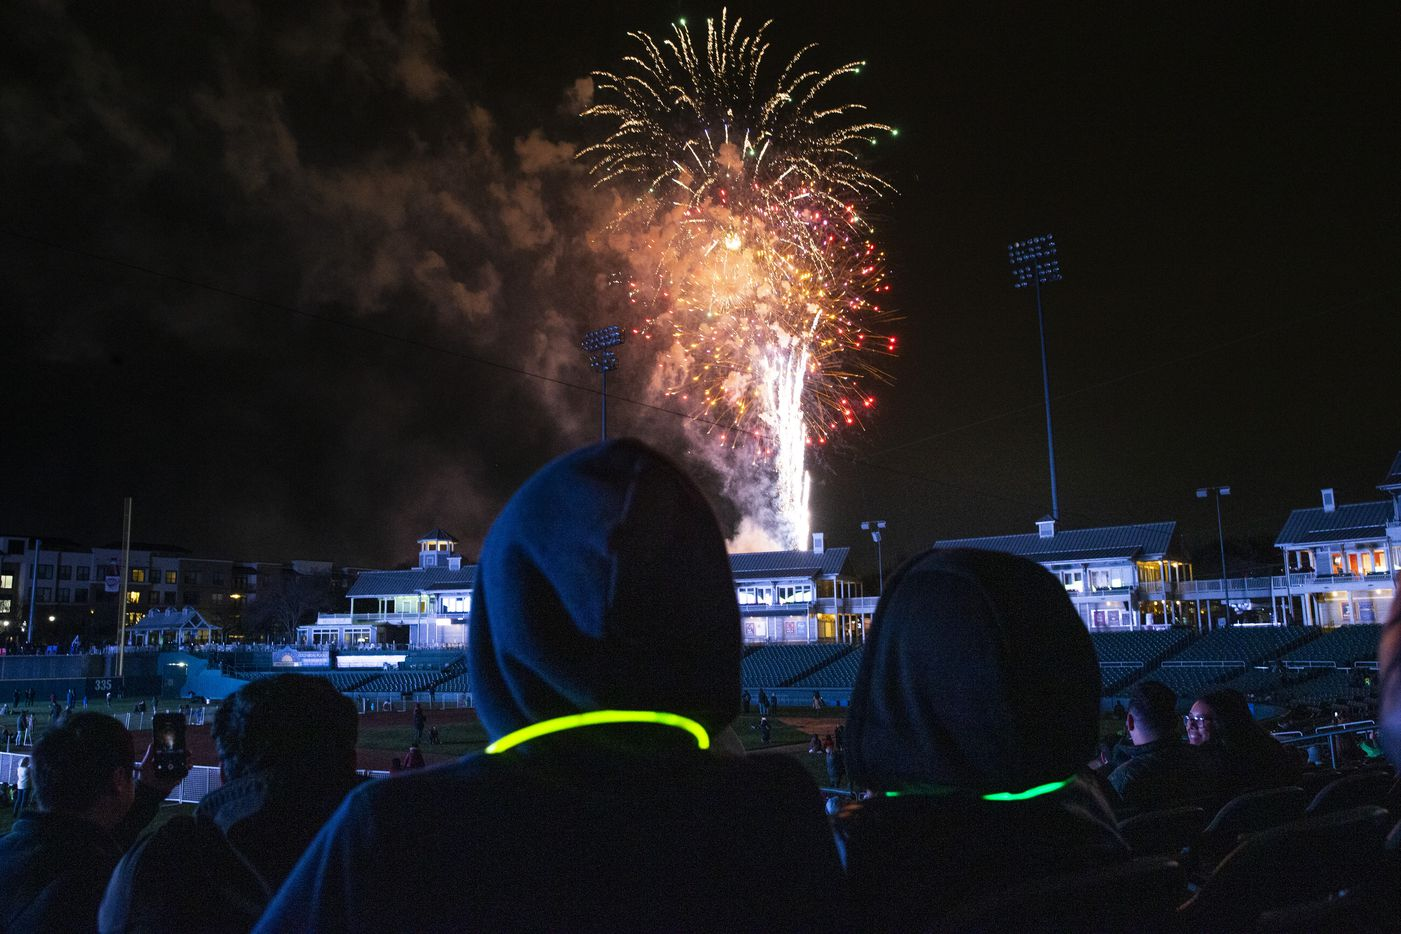 Attendees watch the Day 1 Dallas festival fireworks show at the Dr. Pepper Ballpark in Frisco, Texas, on Wednesday, Jan. 1, 2020. Day 1 Dallas is a kid-friendly New Year's Day festival that features rock-climbing, arts and crafts, bounce houses, and a fireworks show.